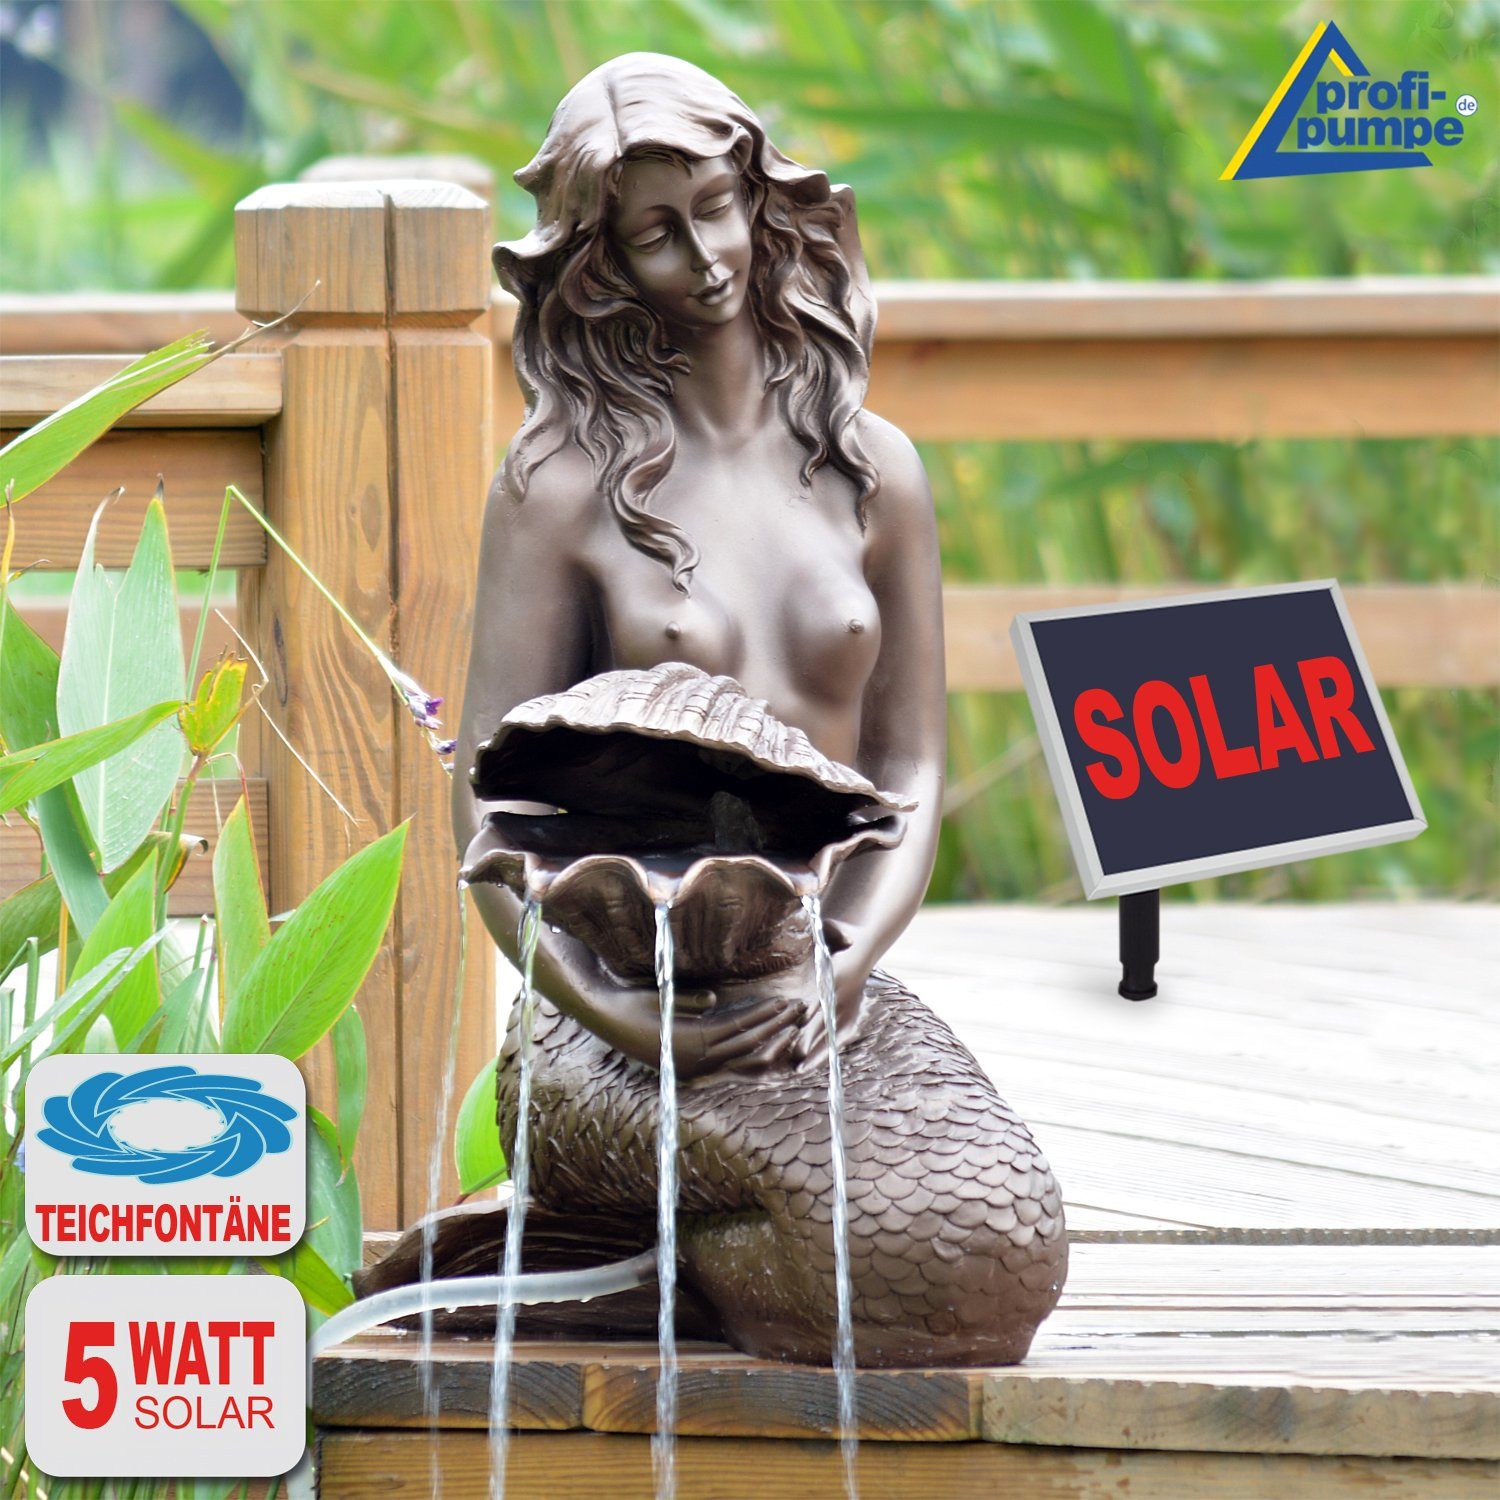 SOLAR FEATURES FOR THE GARDEN - OUTDOOR image 6